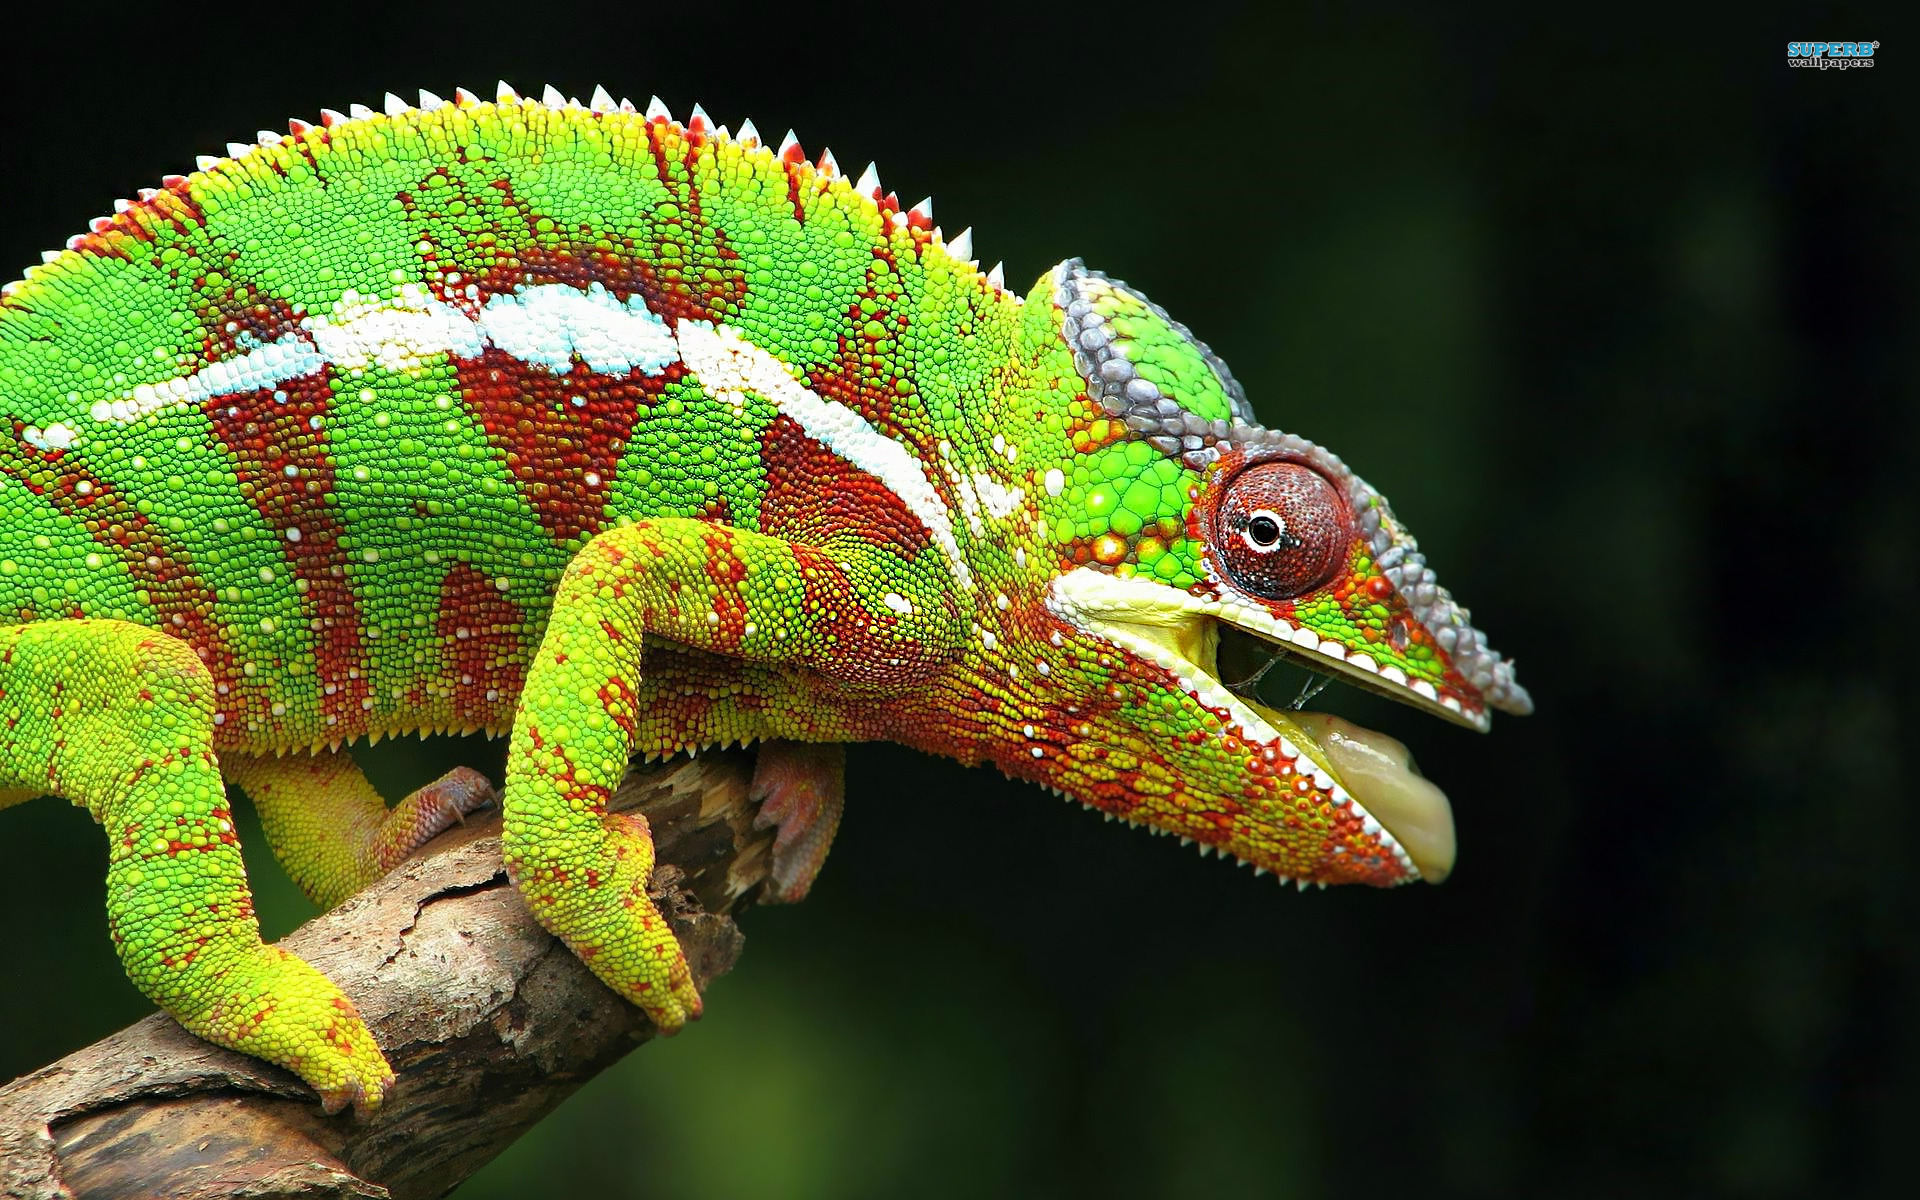 What Chameleons Change Color